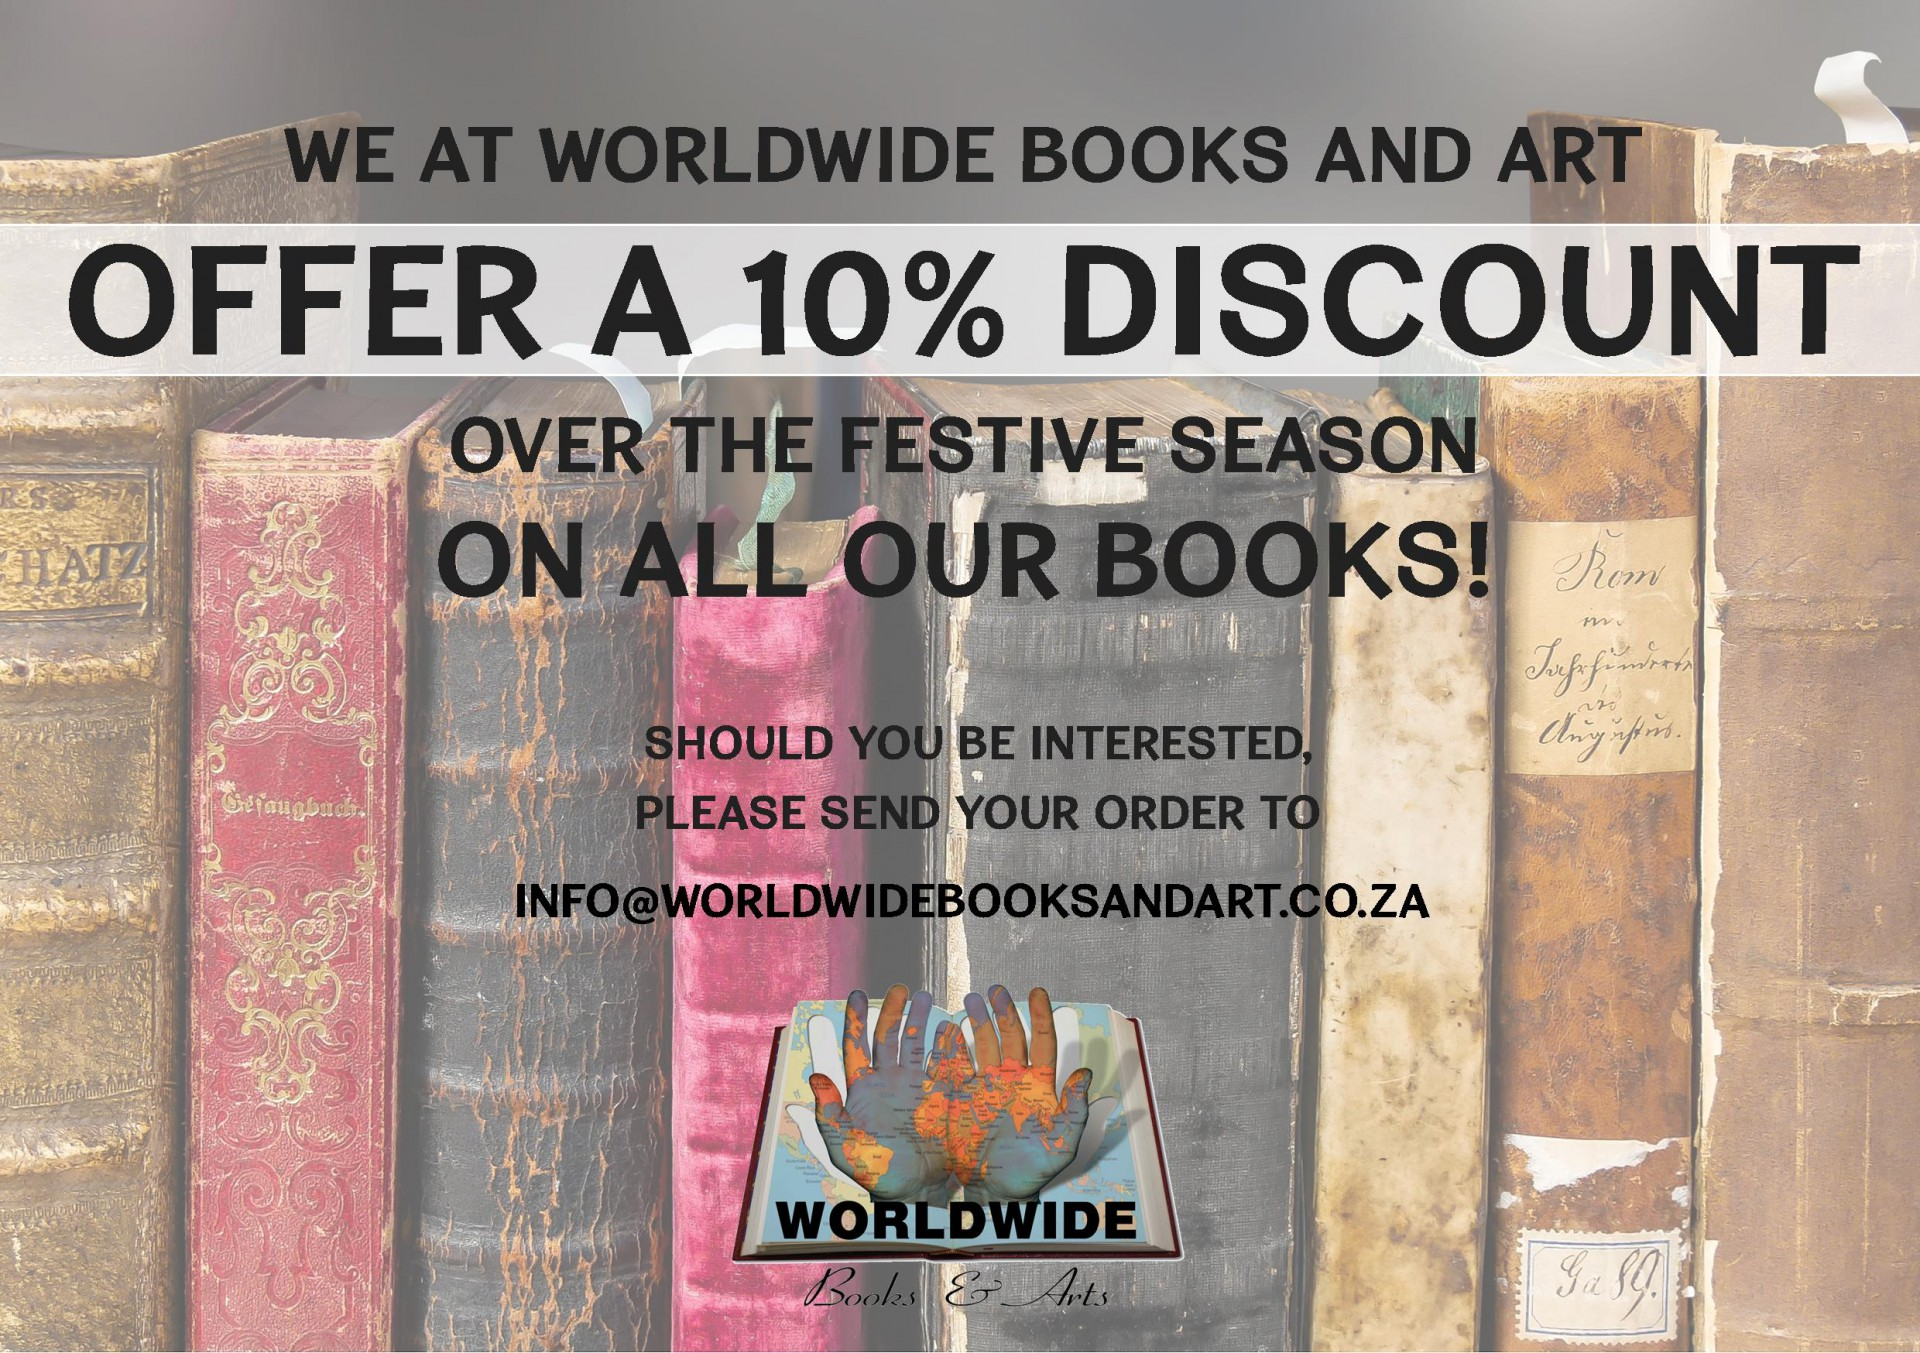 Ww 10 percent discount- books 2